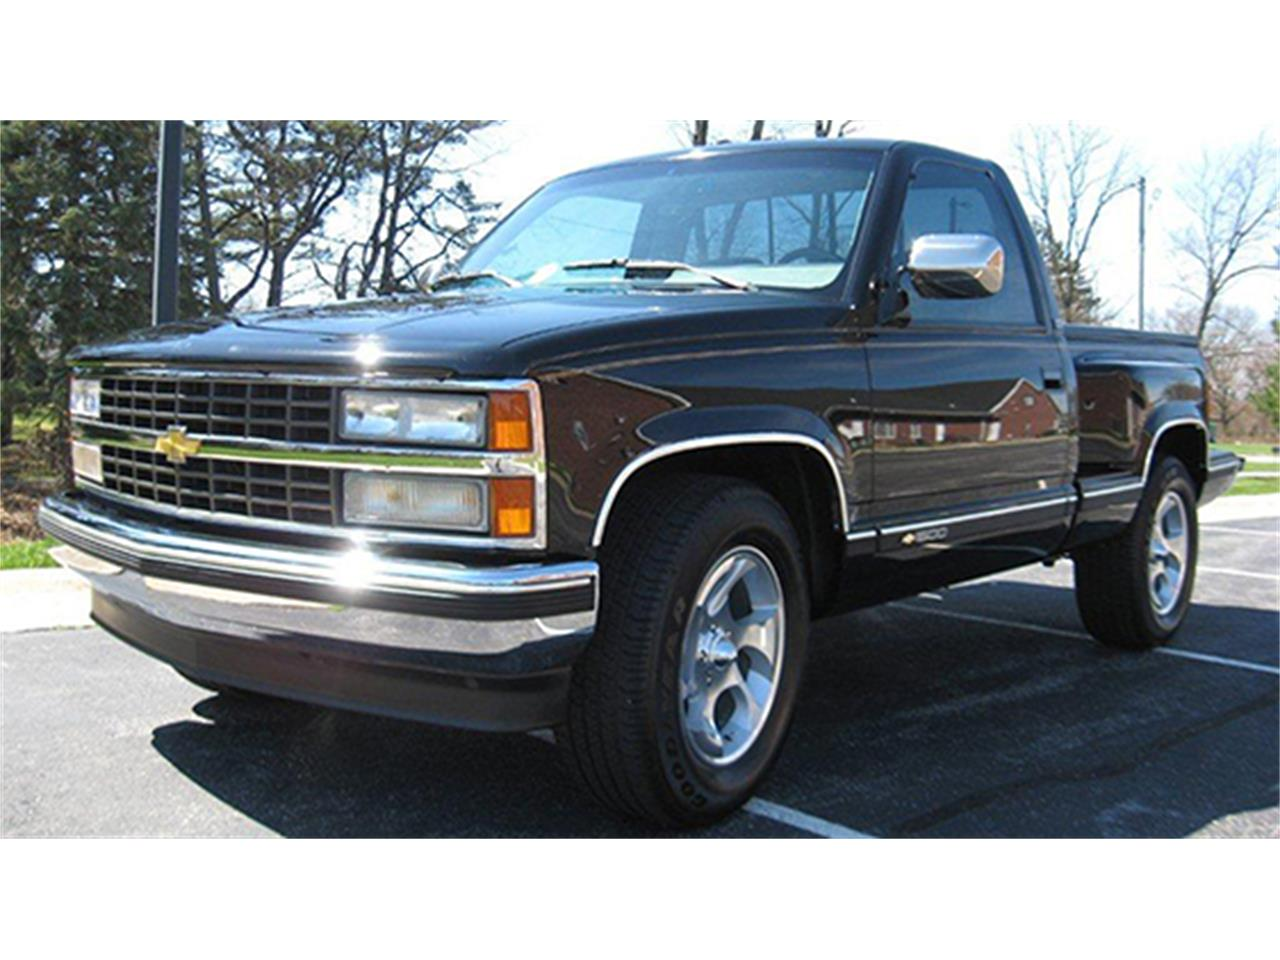 1993 chevy 1500 stepside